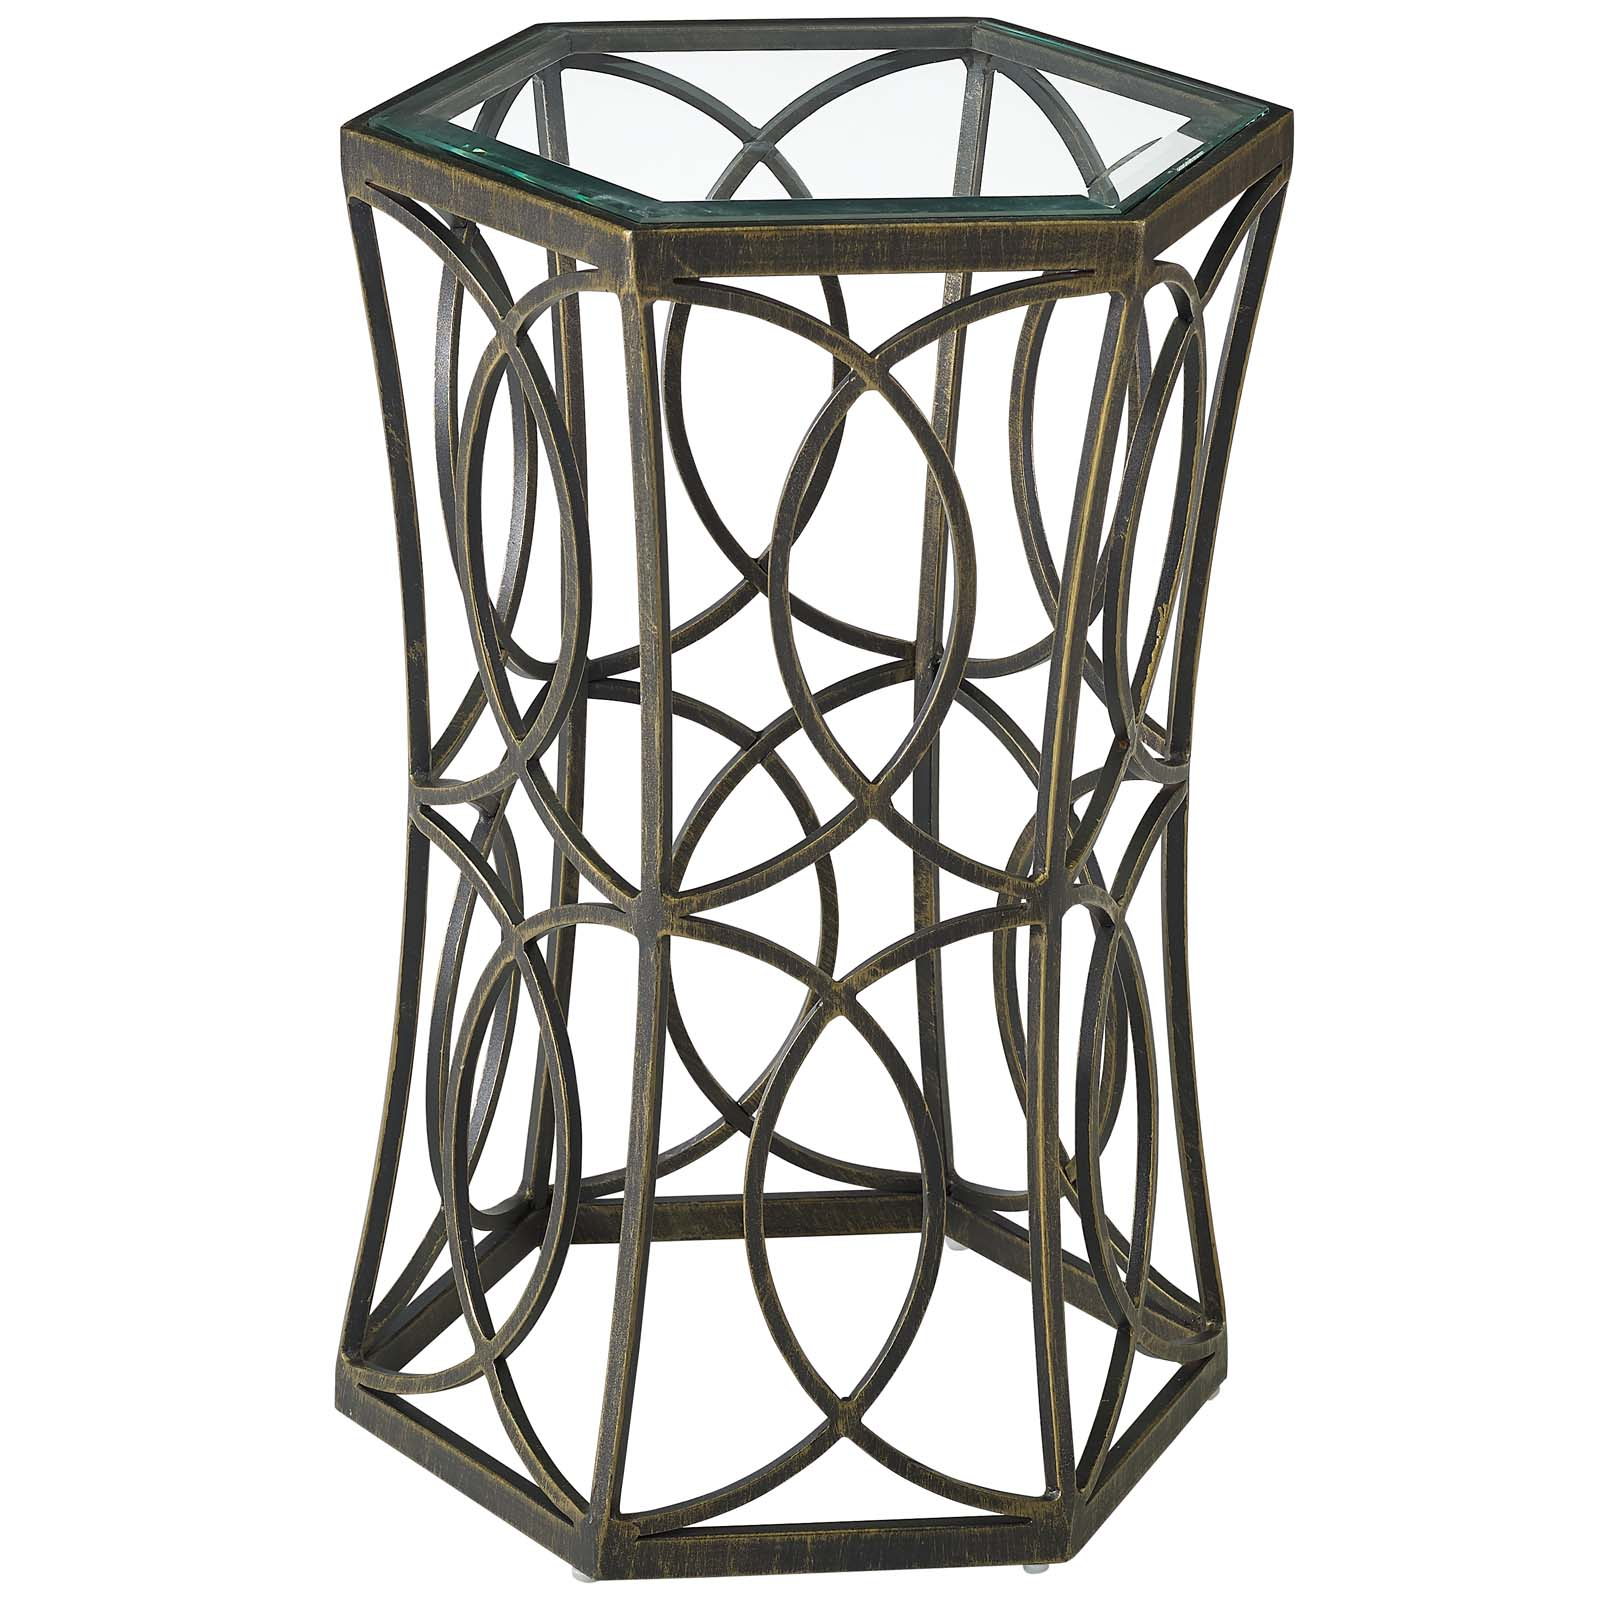 Industrial Country Cottage Farm Beach House Living Room Lounge Club Lobby Soda Side Table, Metal Steel, Black